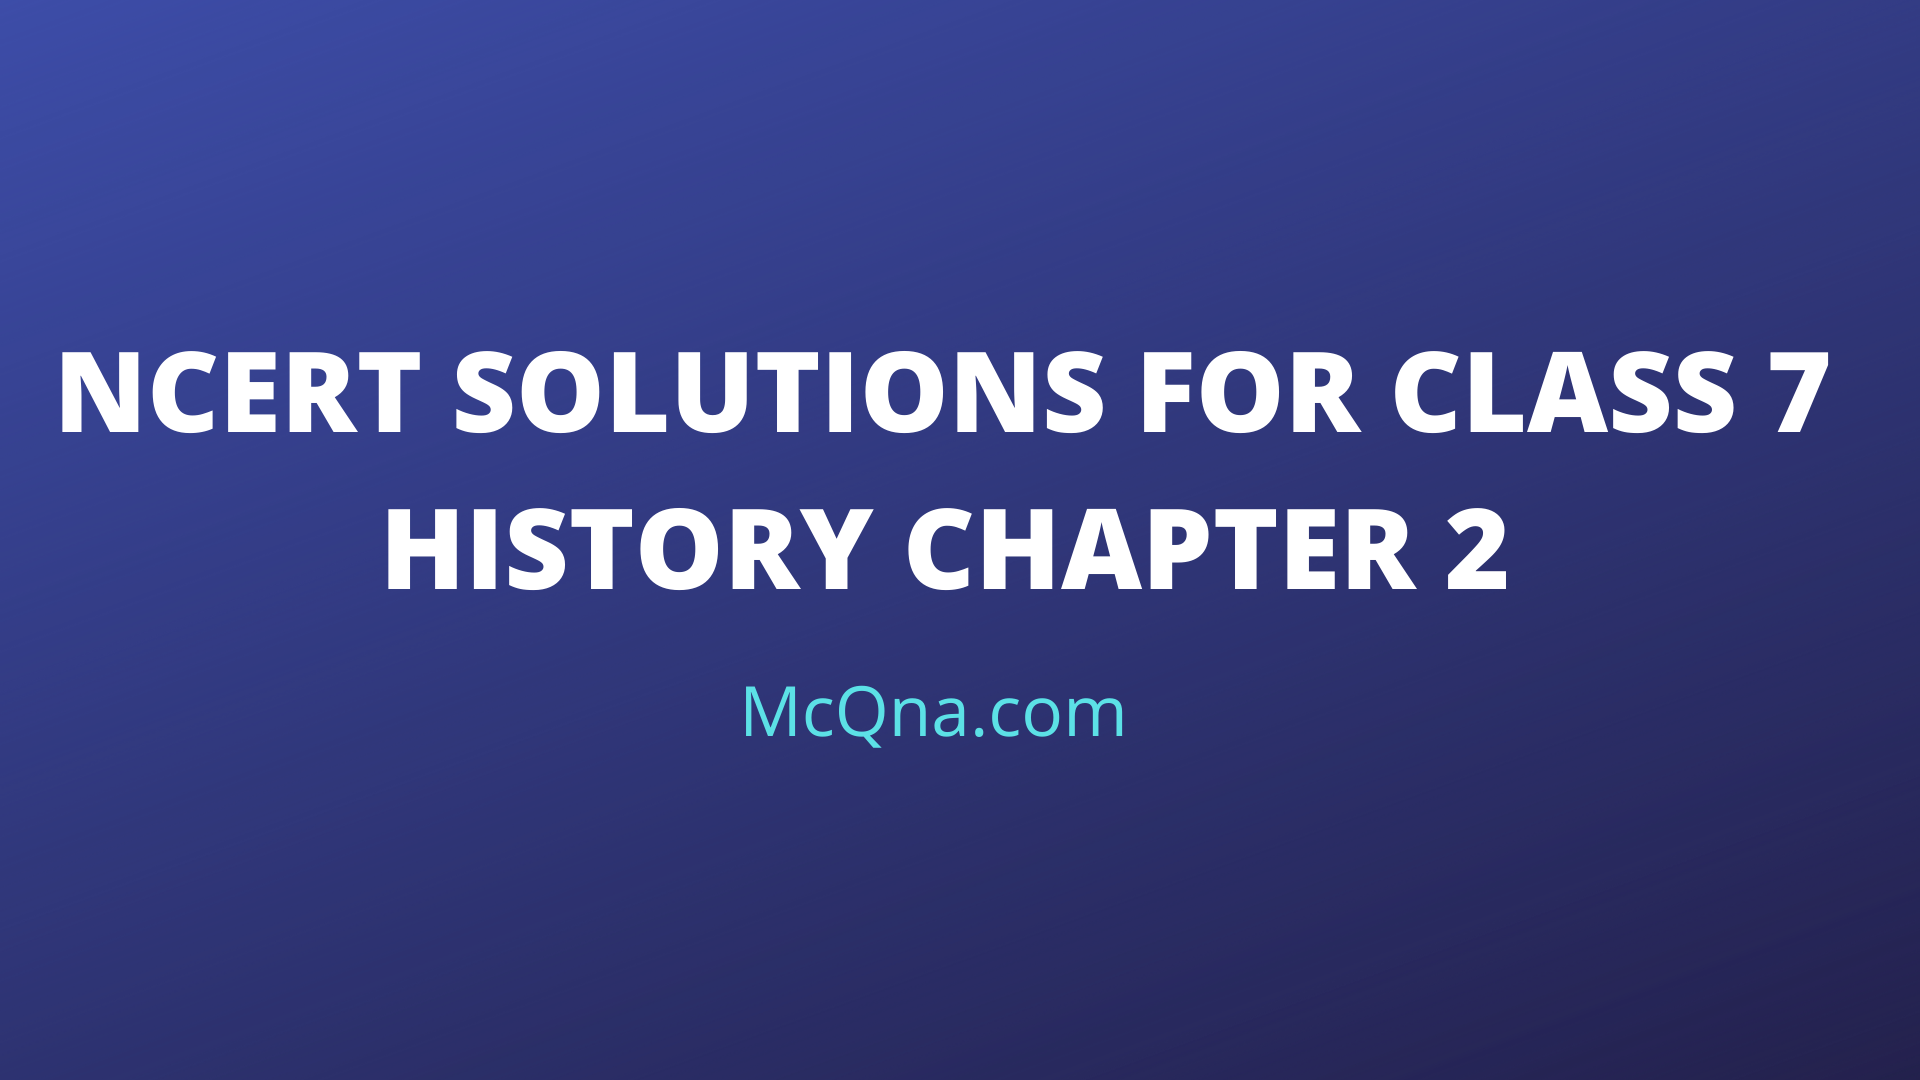 NCERT Solutions For Class 7 History Chapter 2 pdf Download